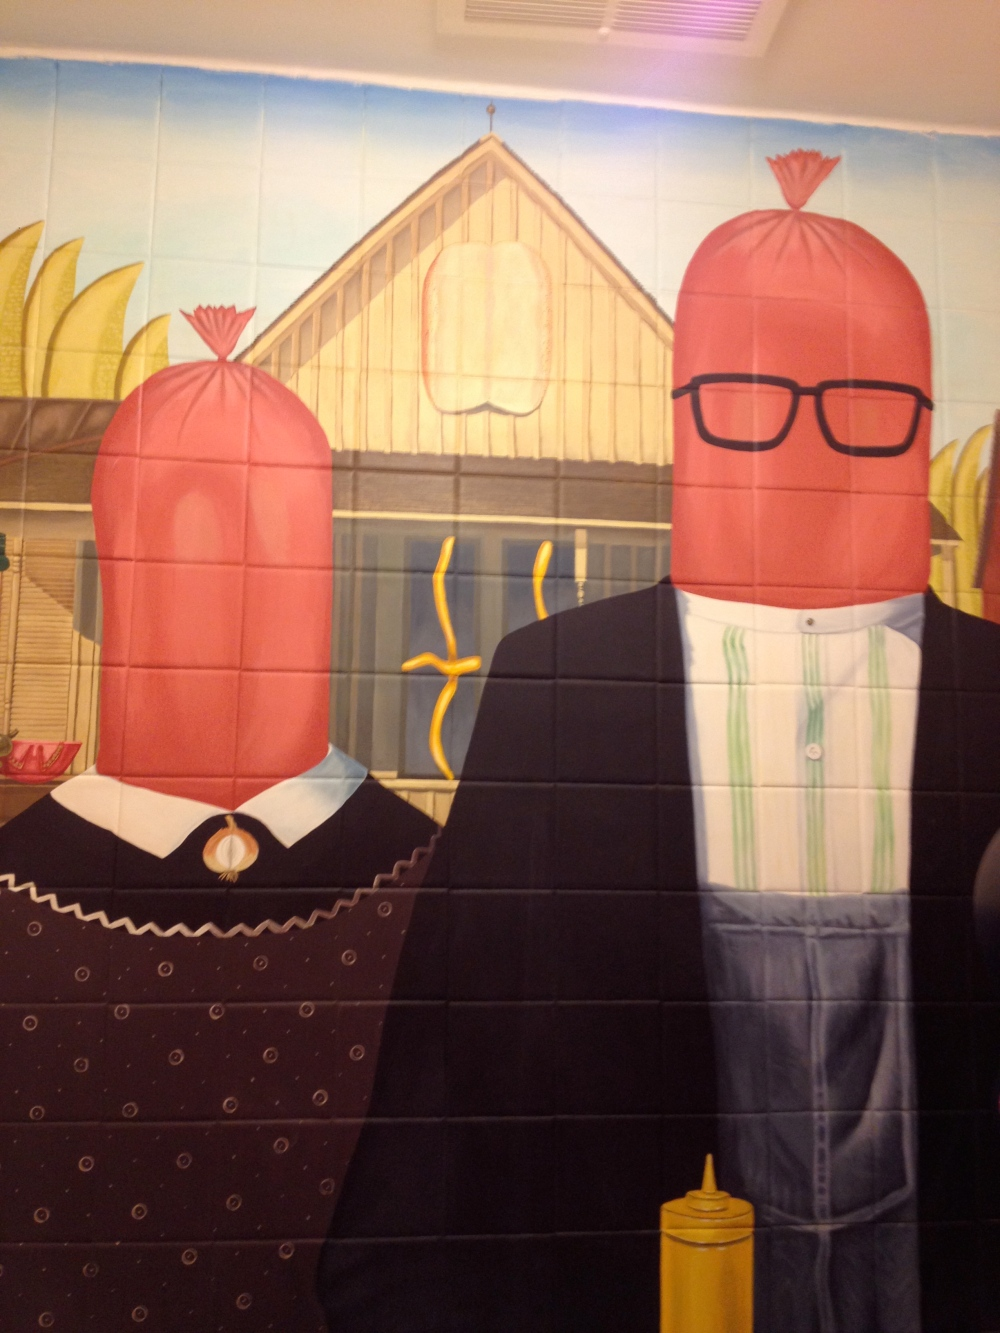 American Gothic goes to Chicago